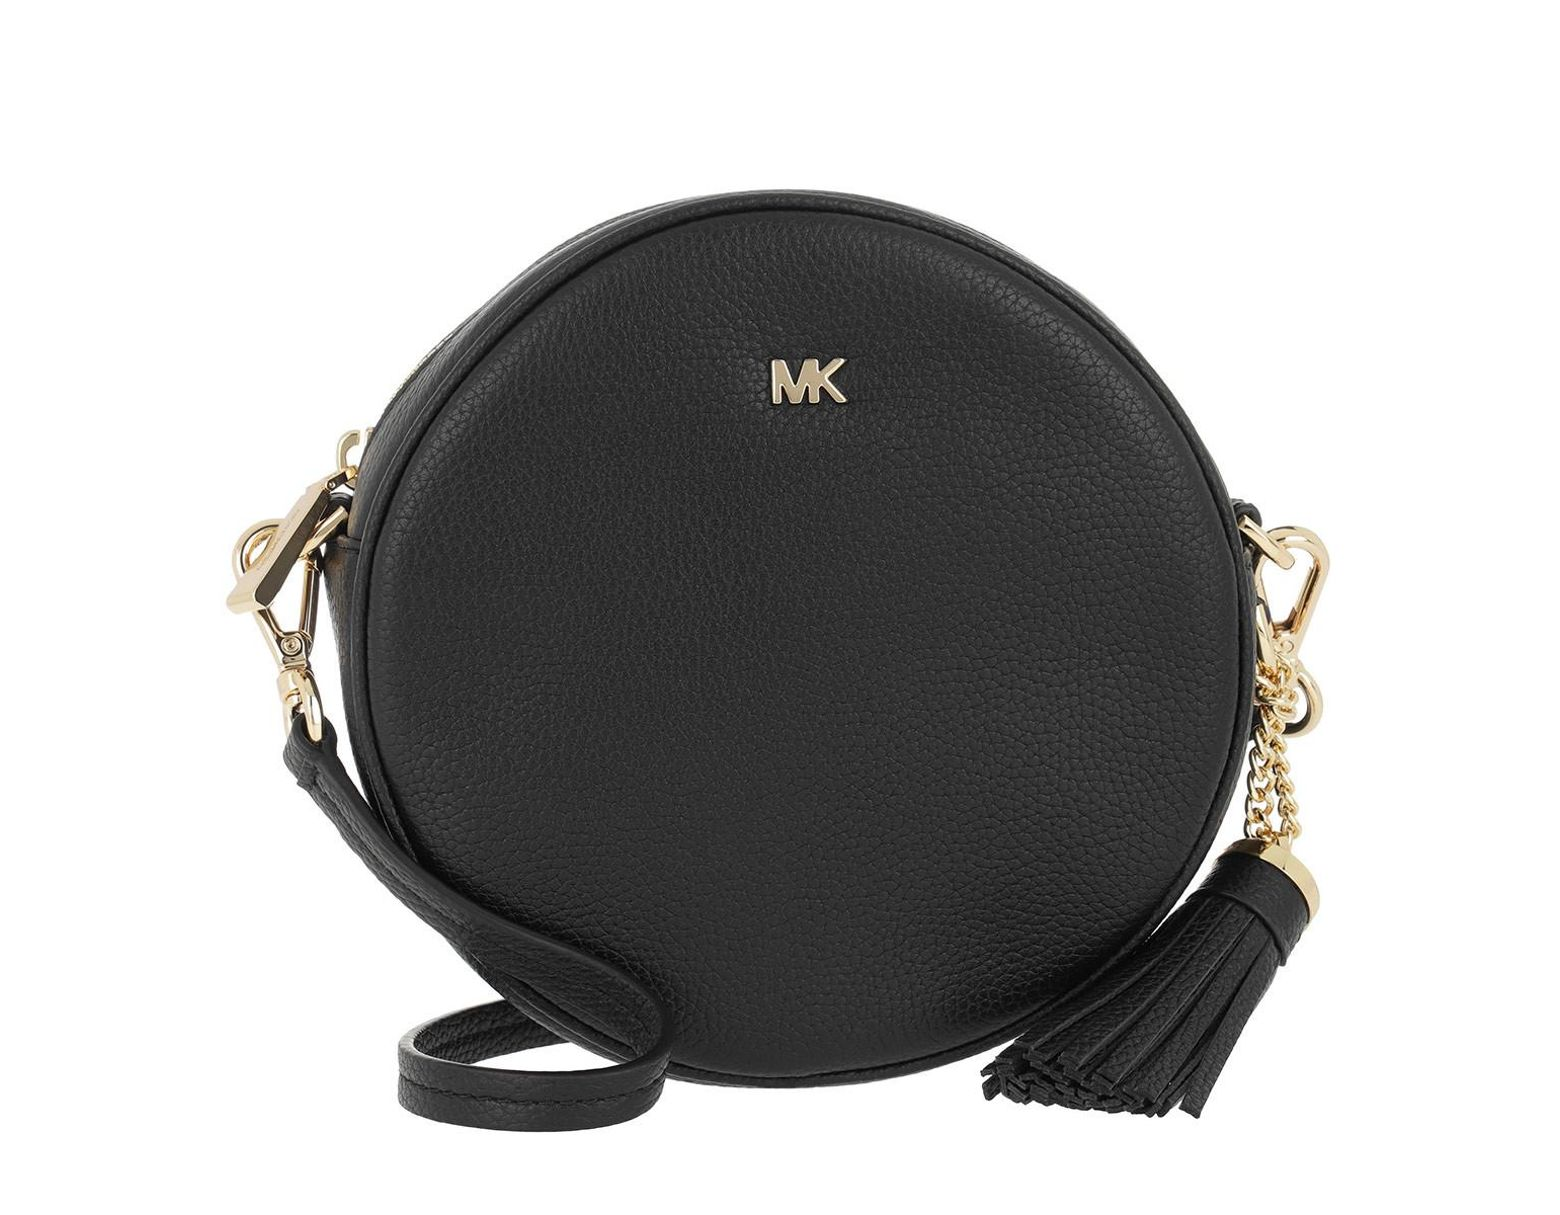 488c9cf9d343b0 Michael Kors Medium Canteen Bag Black in Black - Save 4% - Lyst